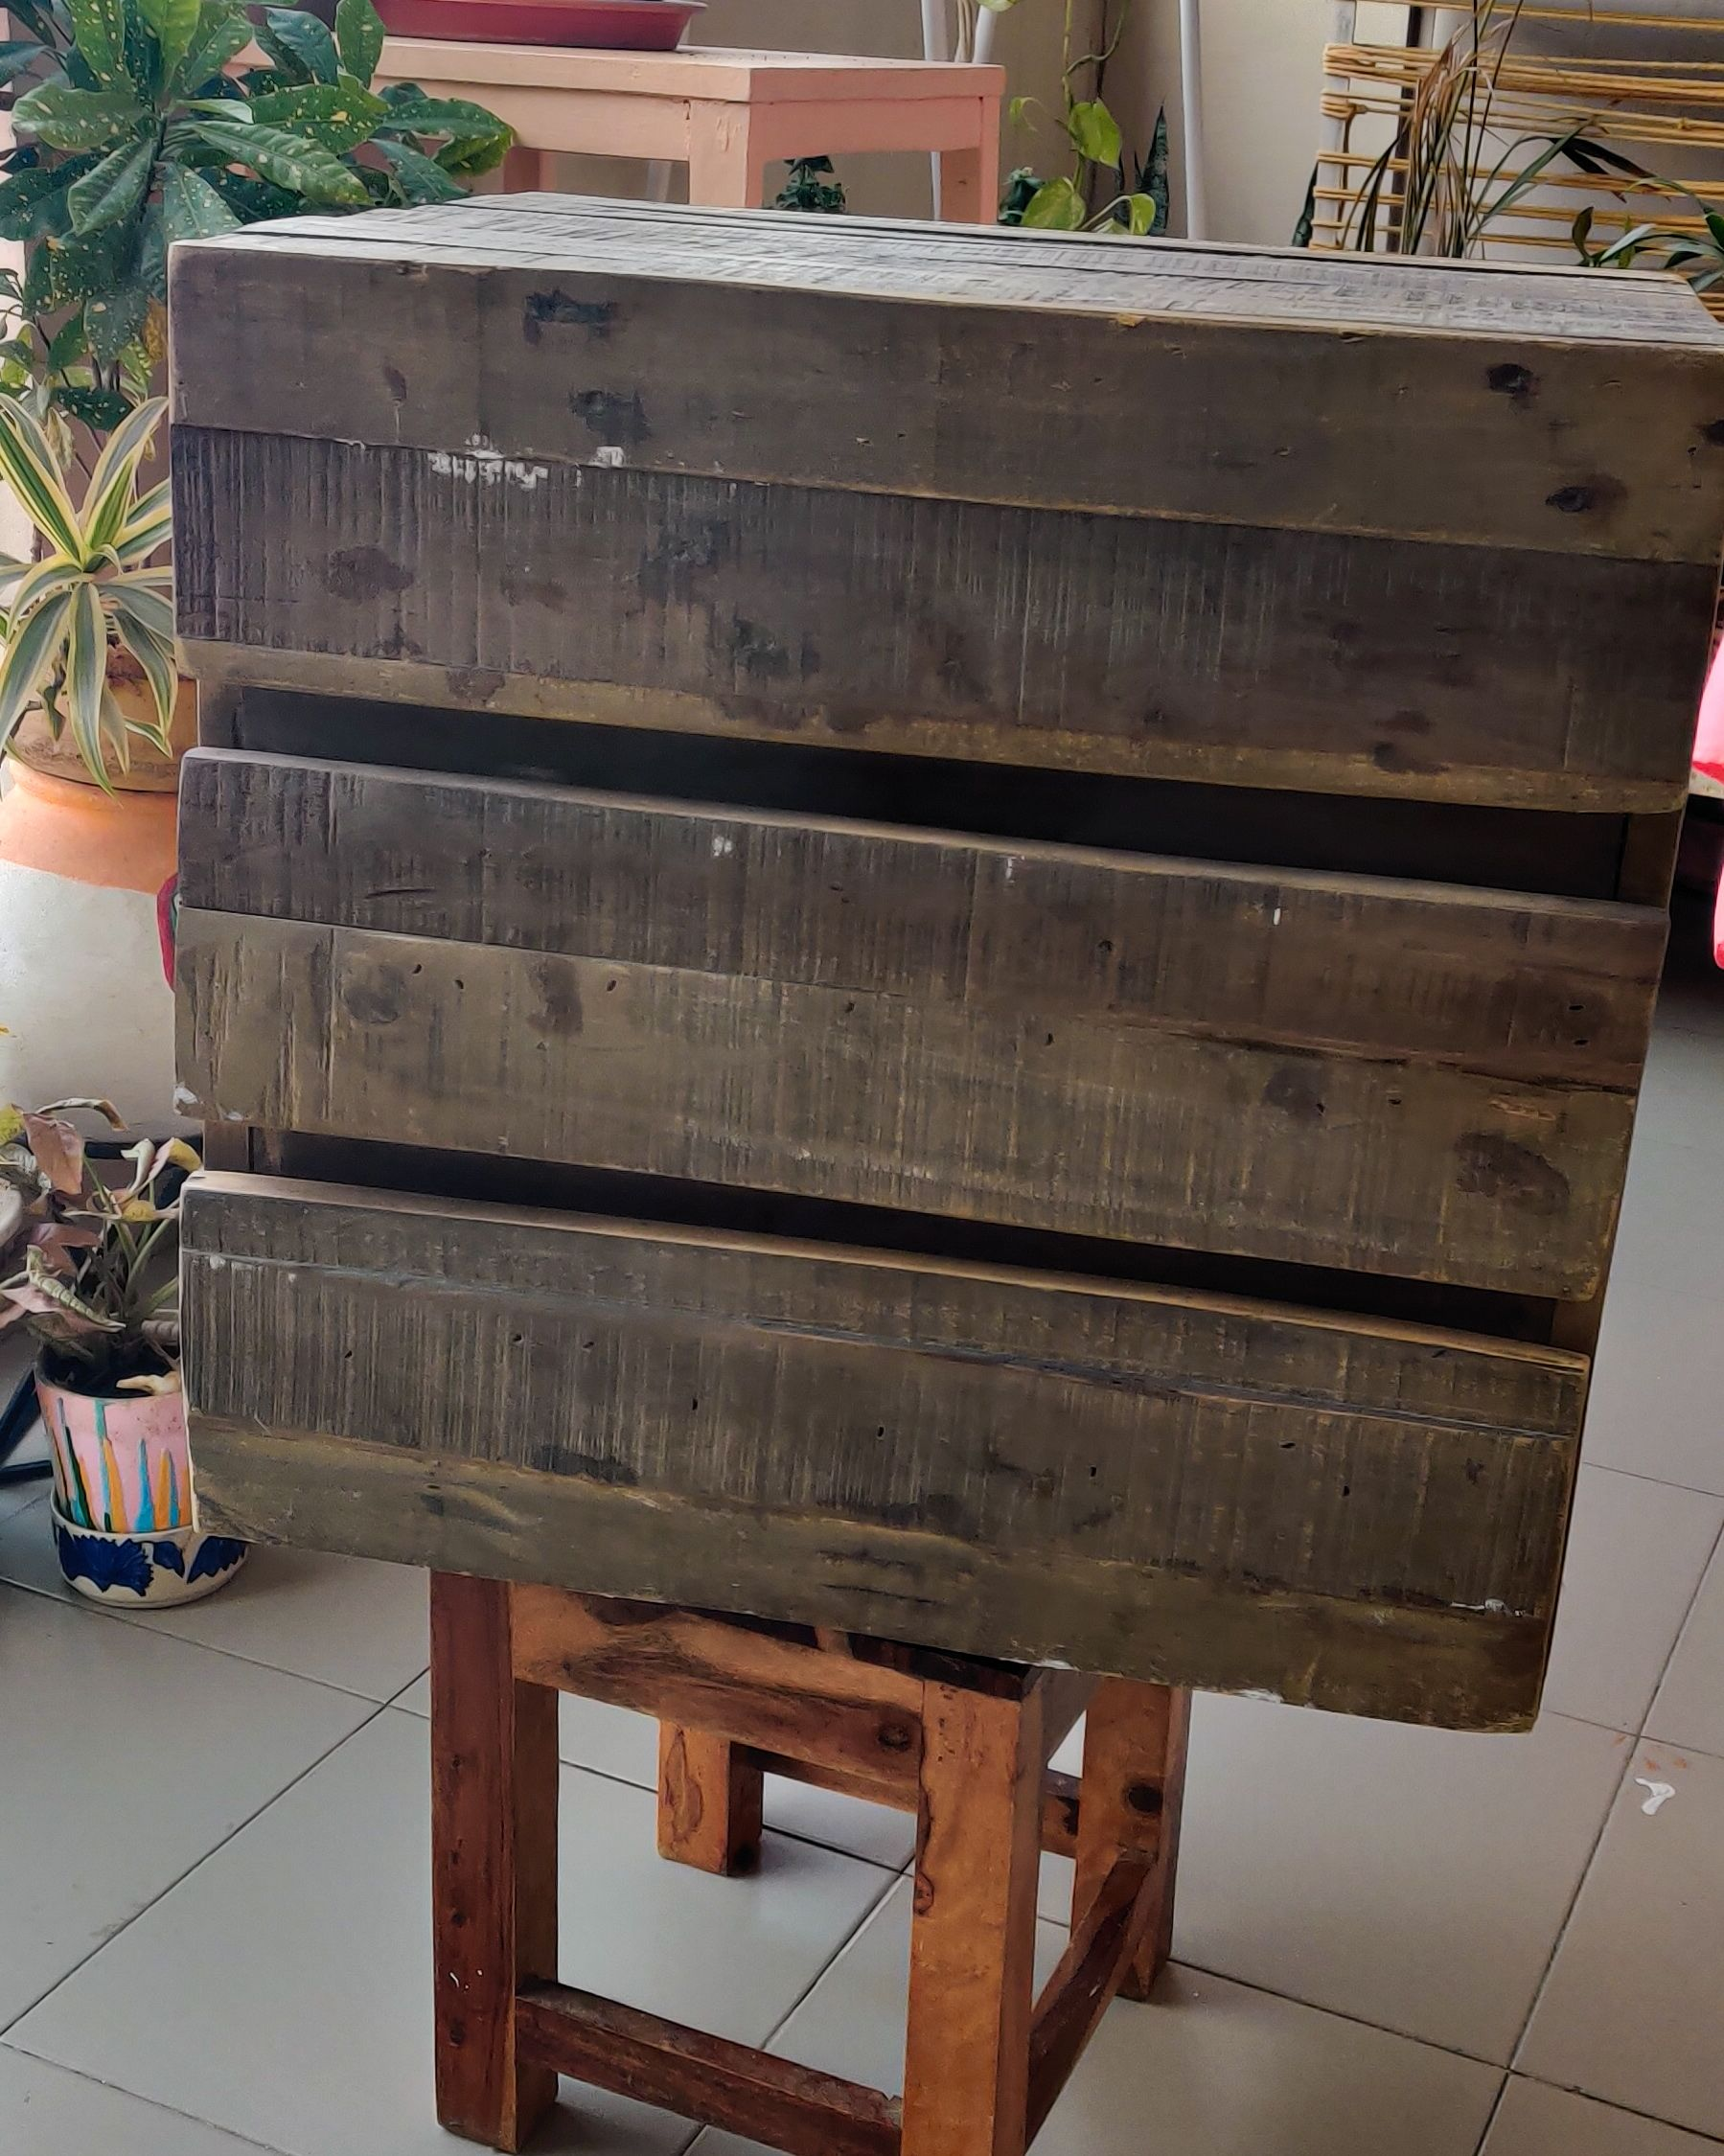 diy room decor-chest of drawers-before image